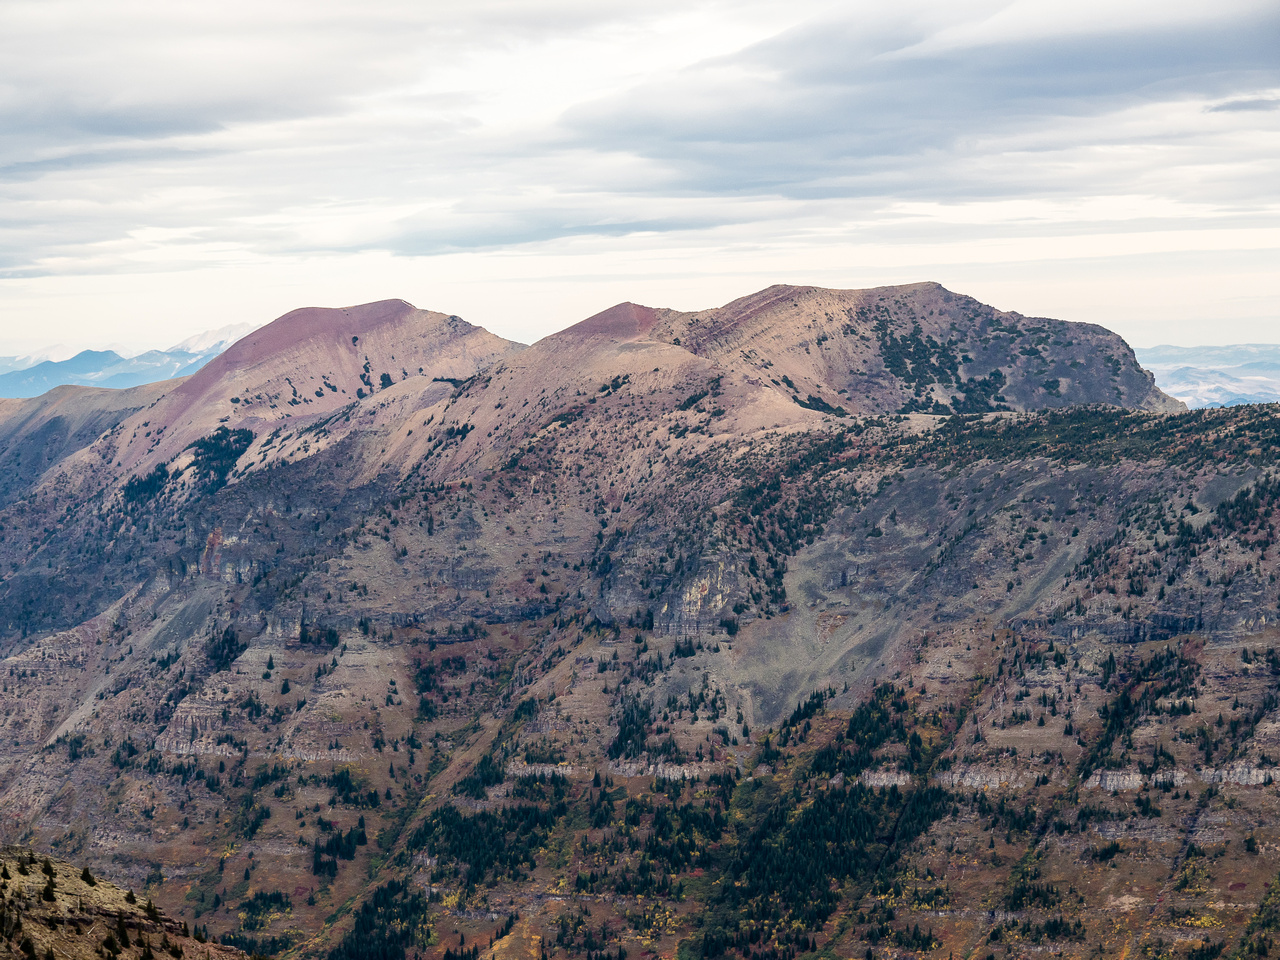 Southfork Mountain and Barnaby Ridge bring back really good memories of another solo fall trip I did in this area.